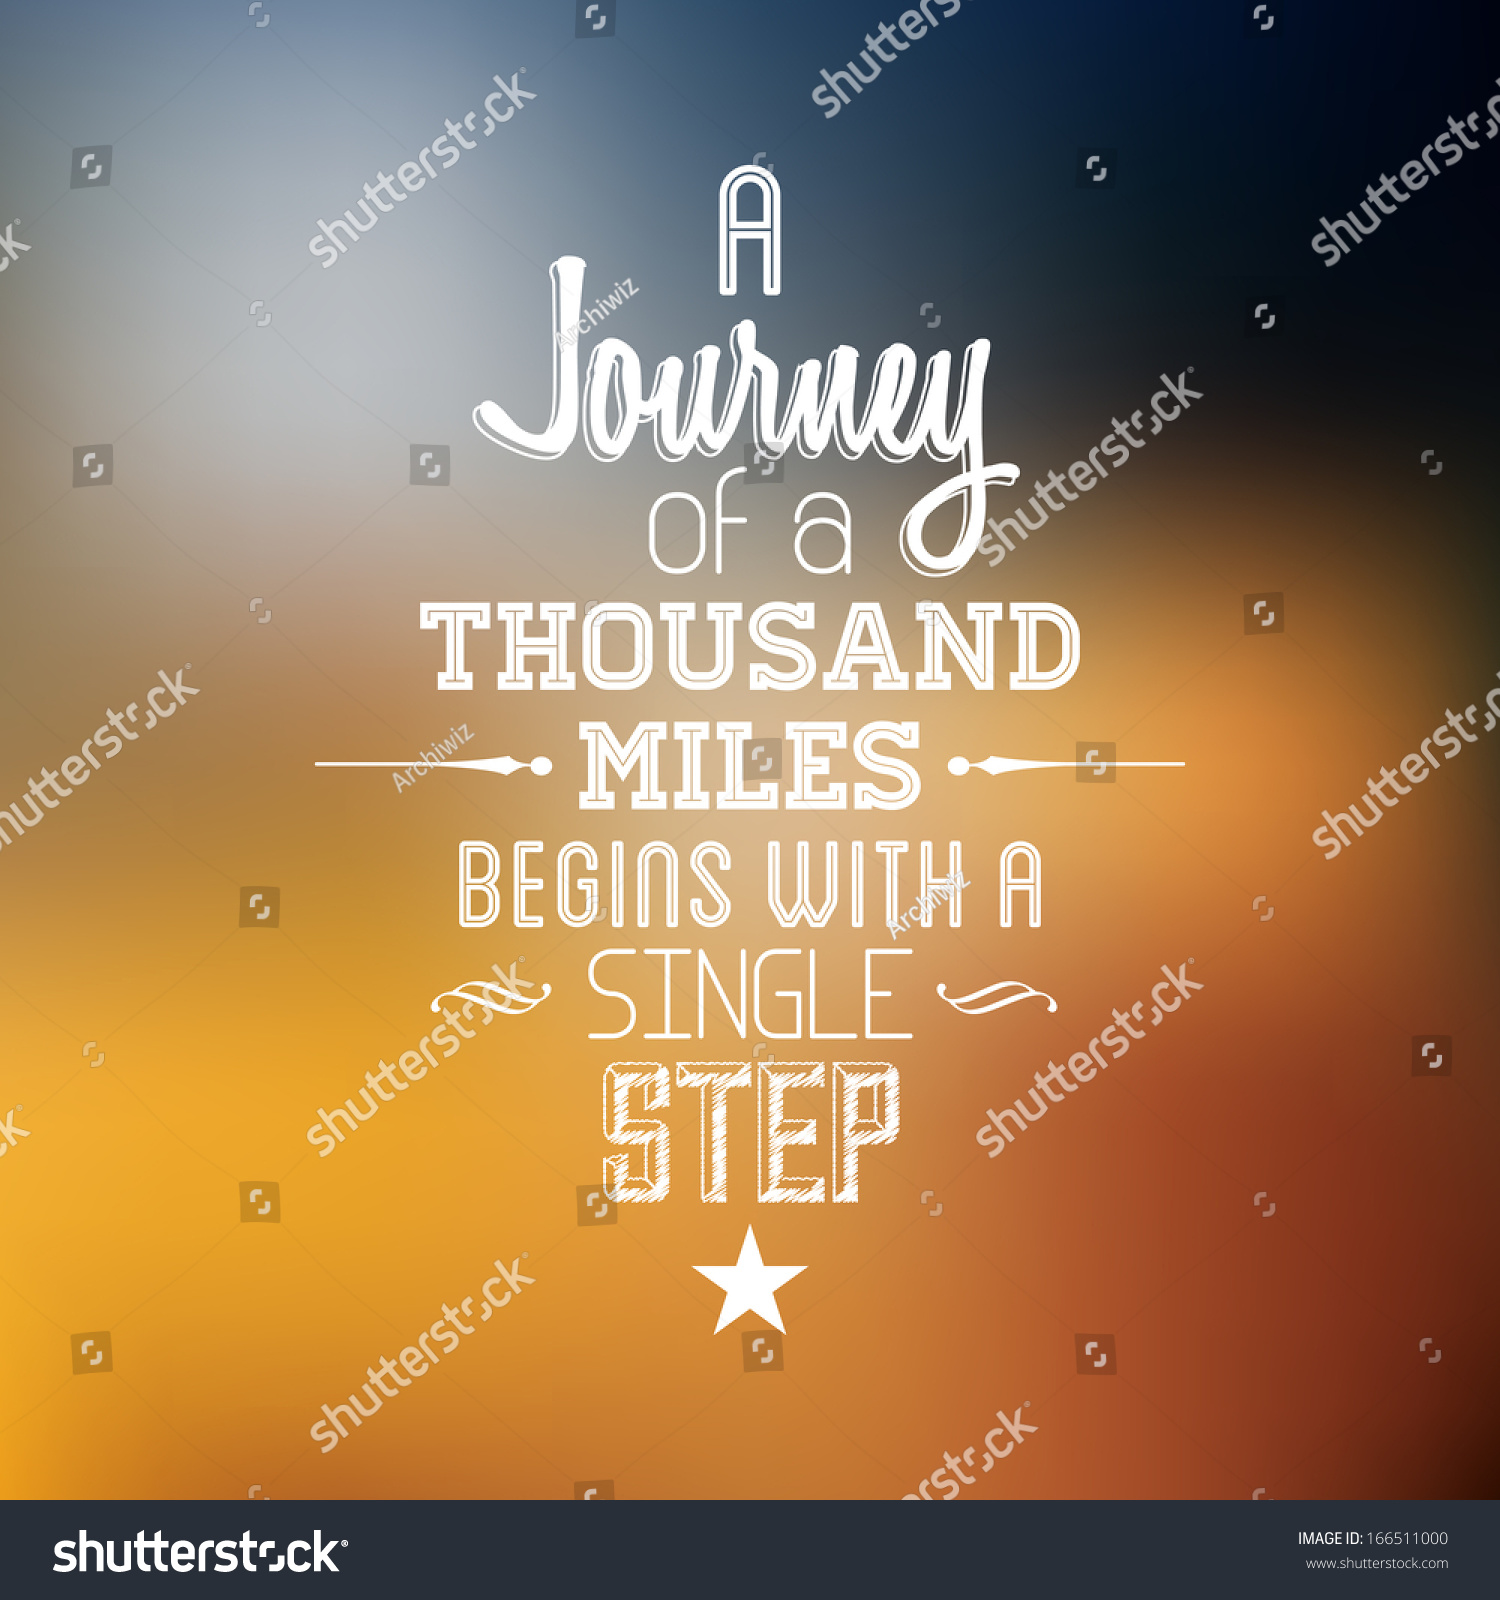 a journey of a thousand miles Translations in context of journey of a thousand miles in english-spanish from reverso context: a journey of a thousand miles must begin with a single step.